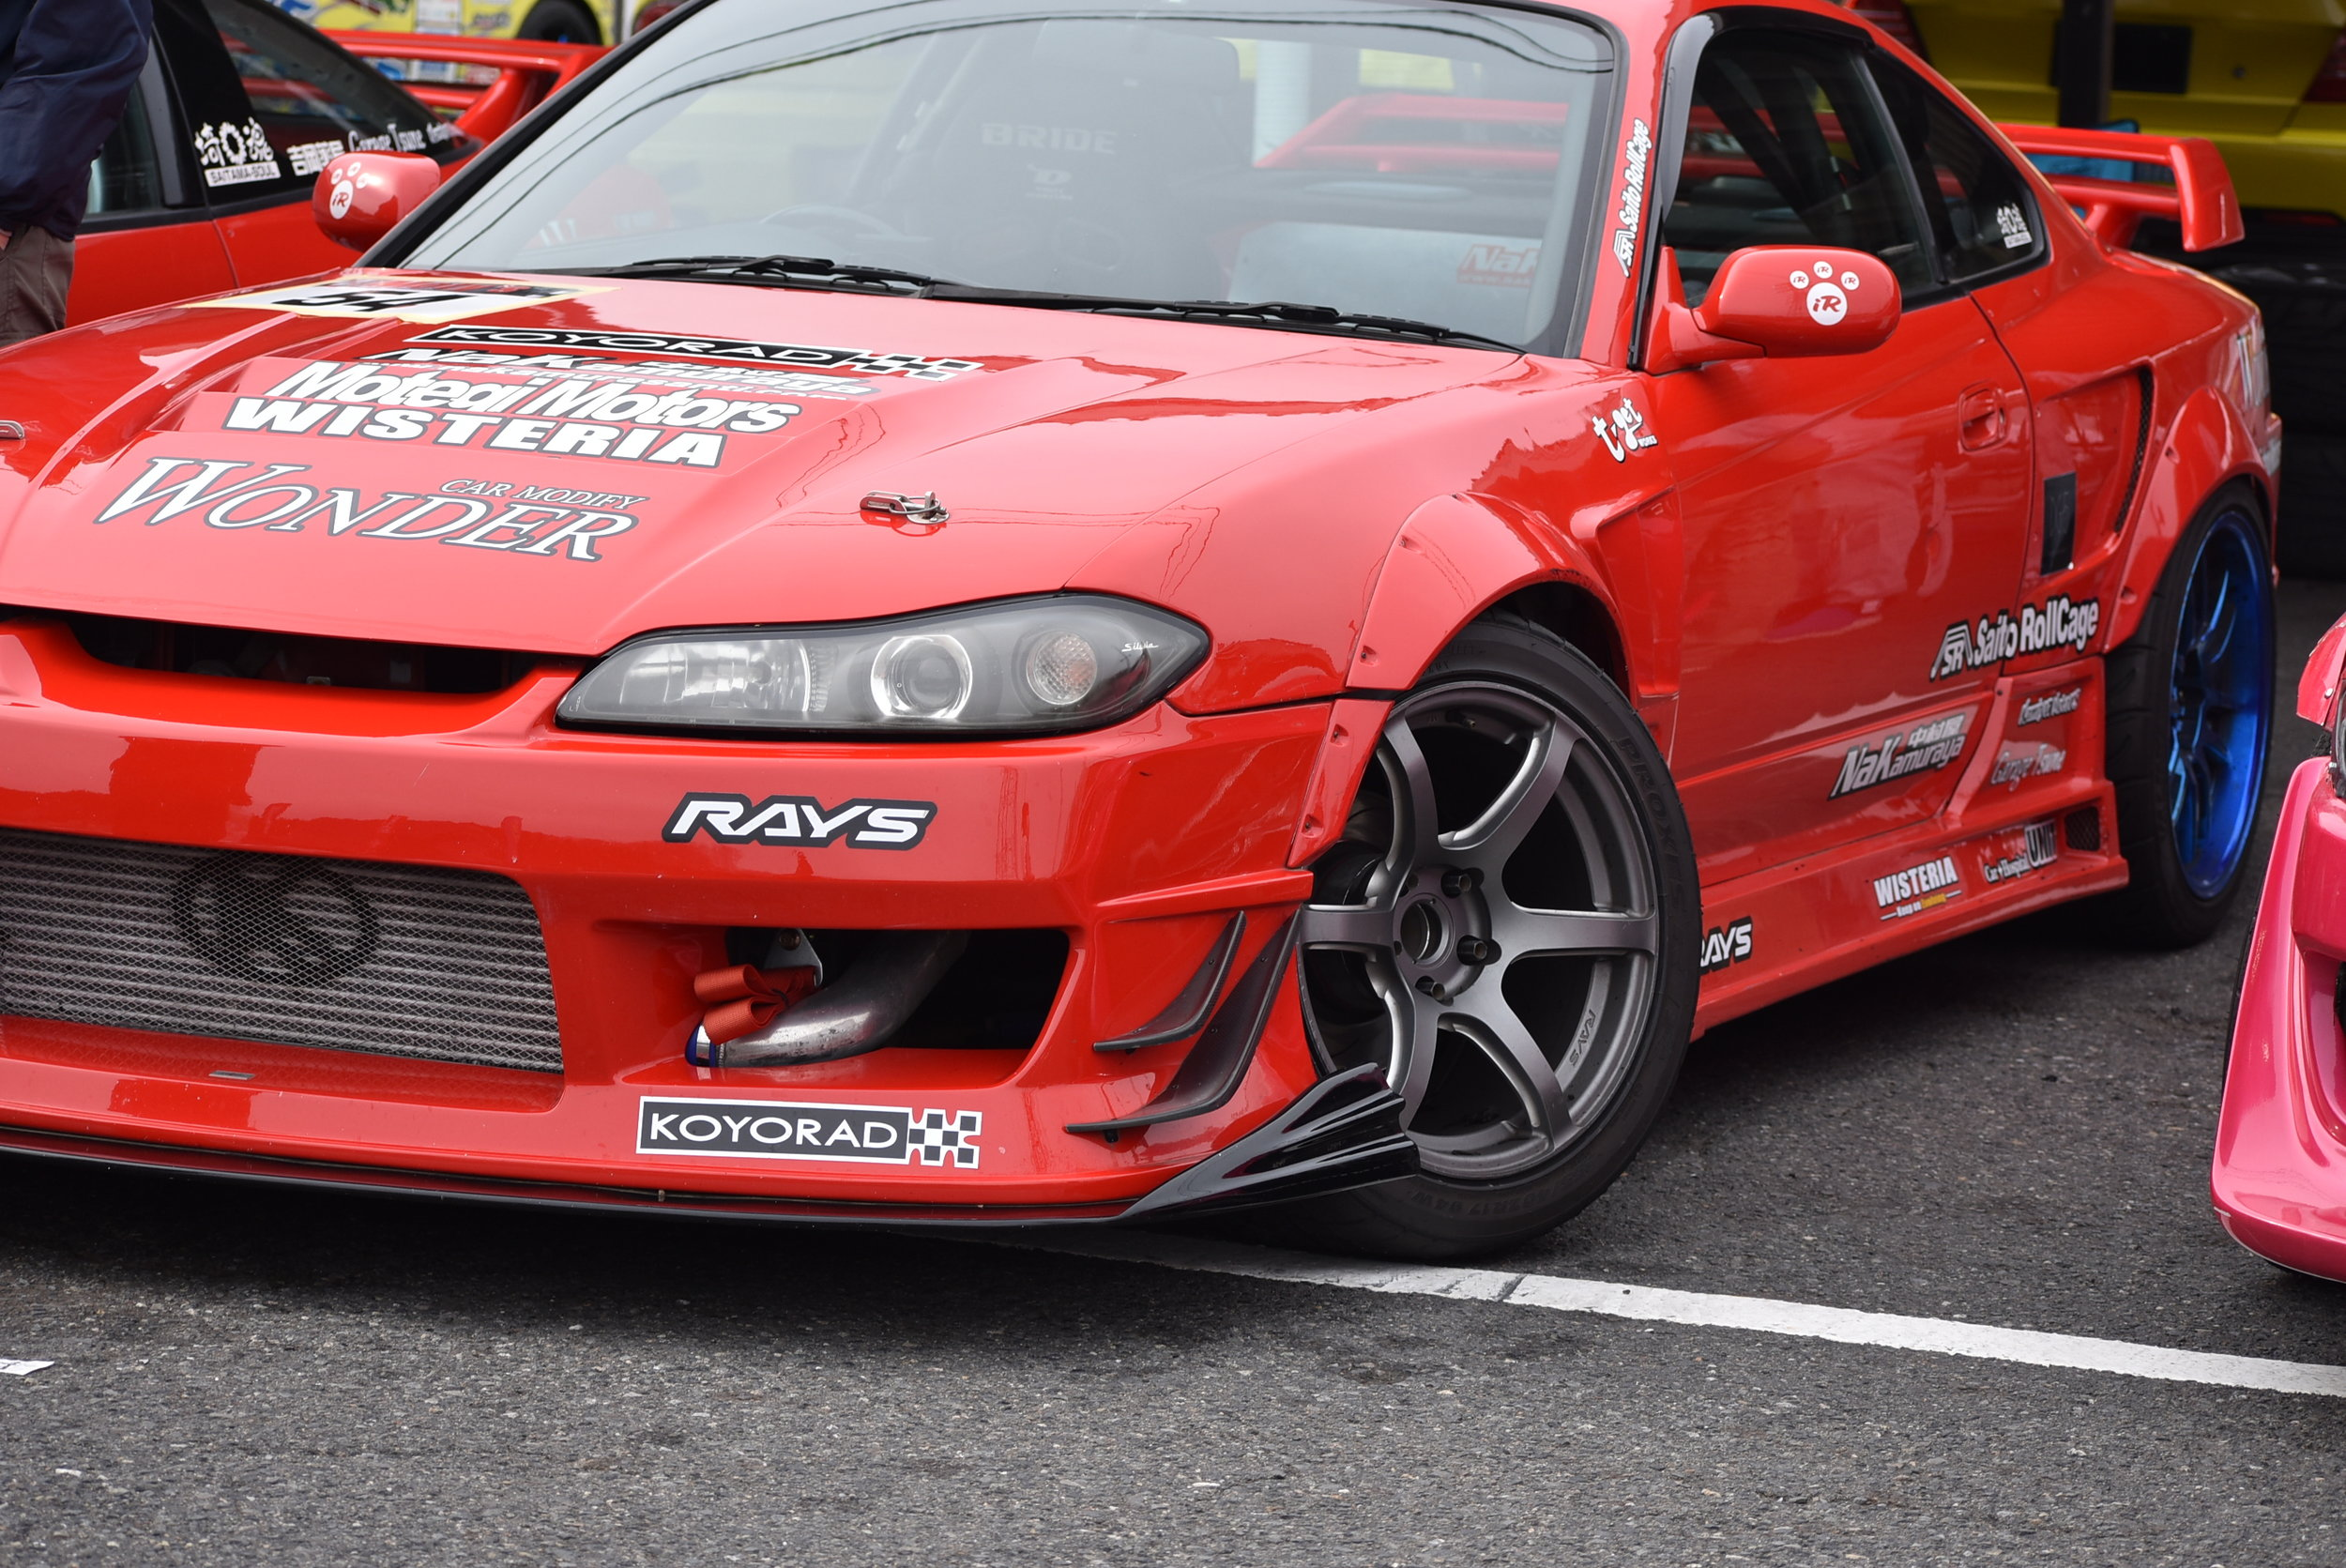 Car Modify Wonder is one of my favorites! The'y're the reason I want an S14! Their S14A/B kits are wild!